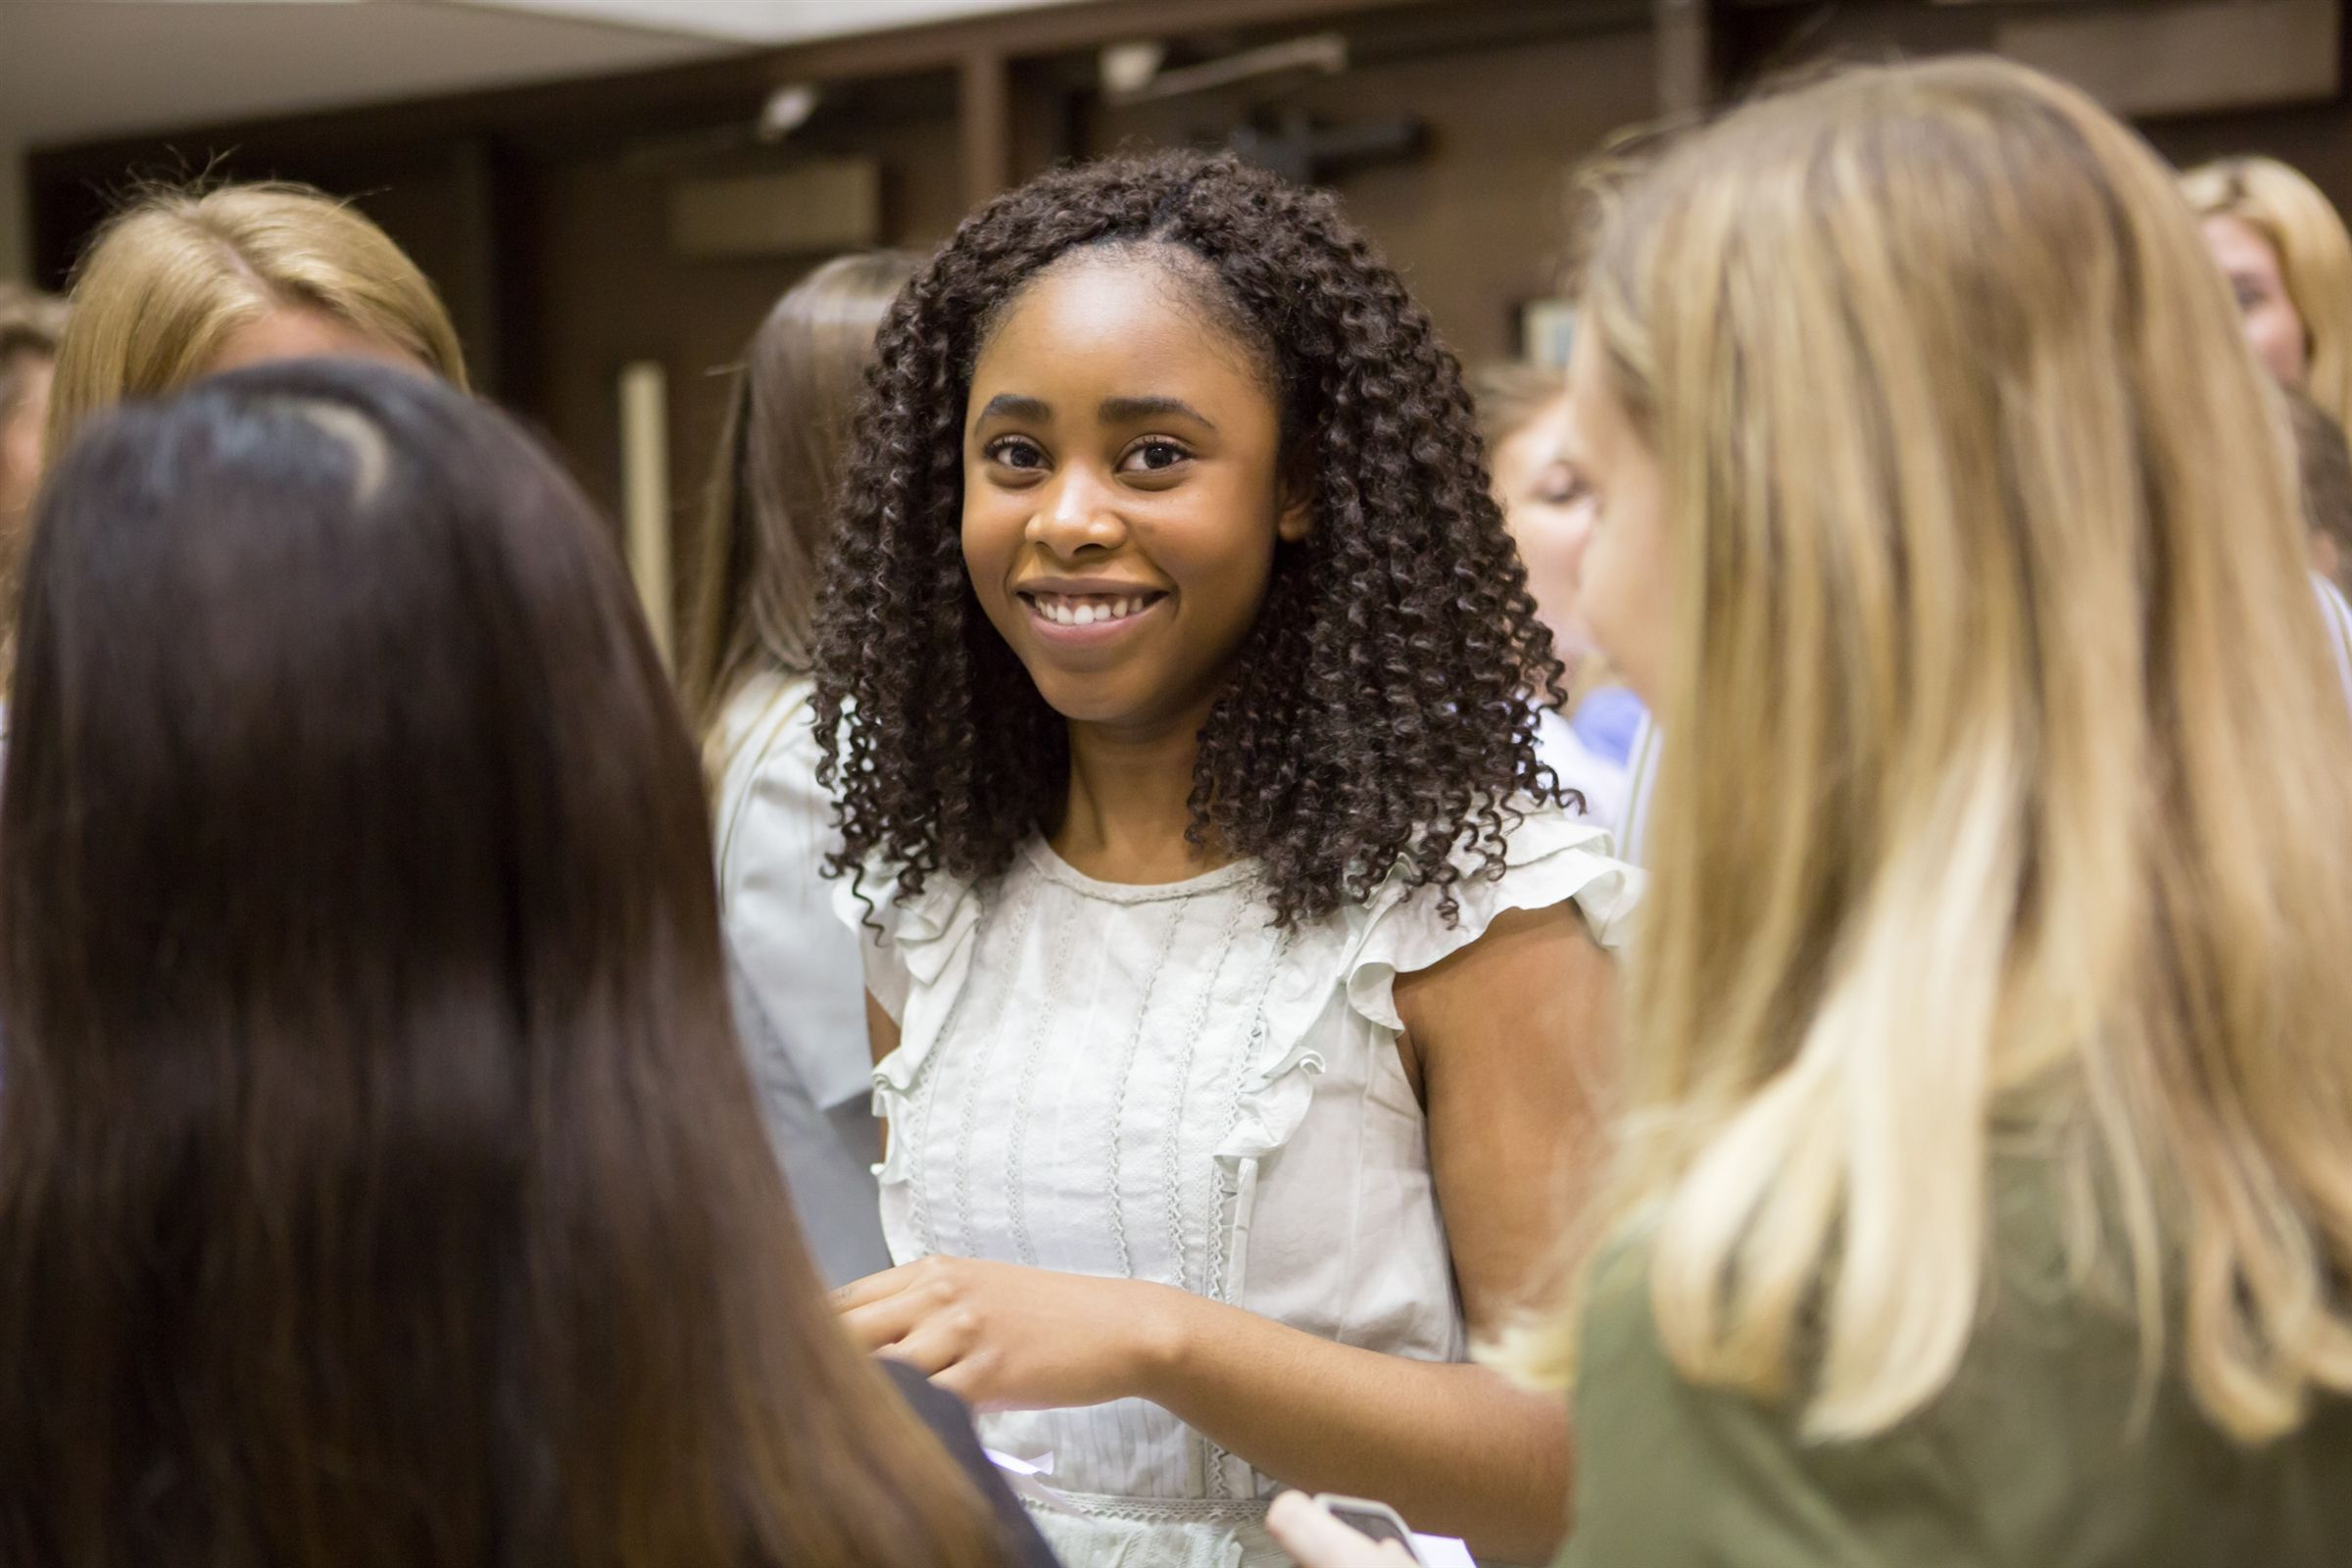 High school girl in a leadership position at Second Baptist School standing out in the crowd